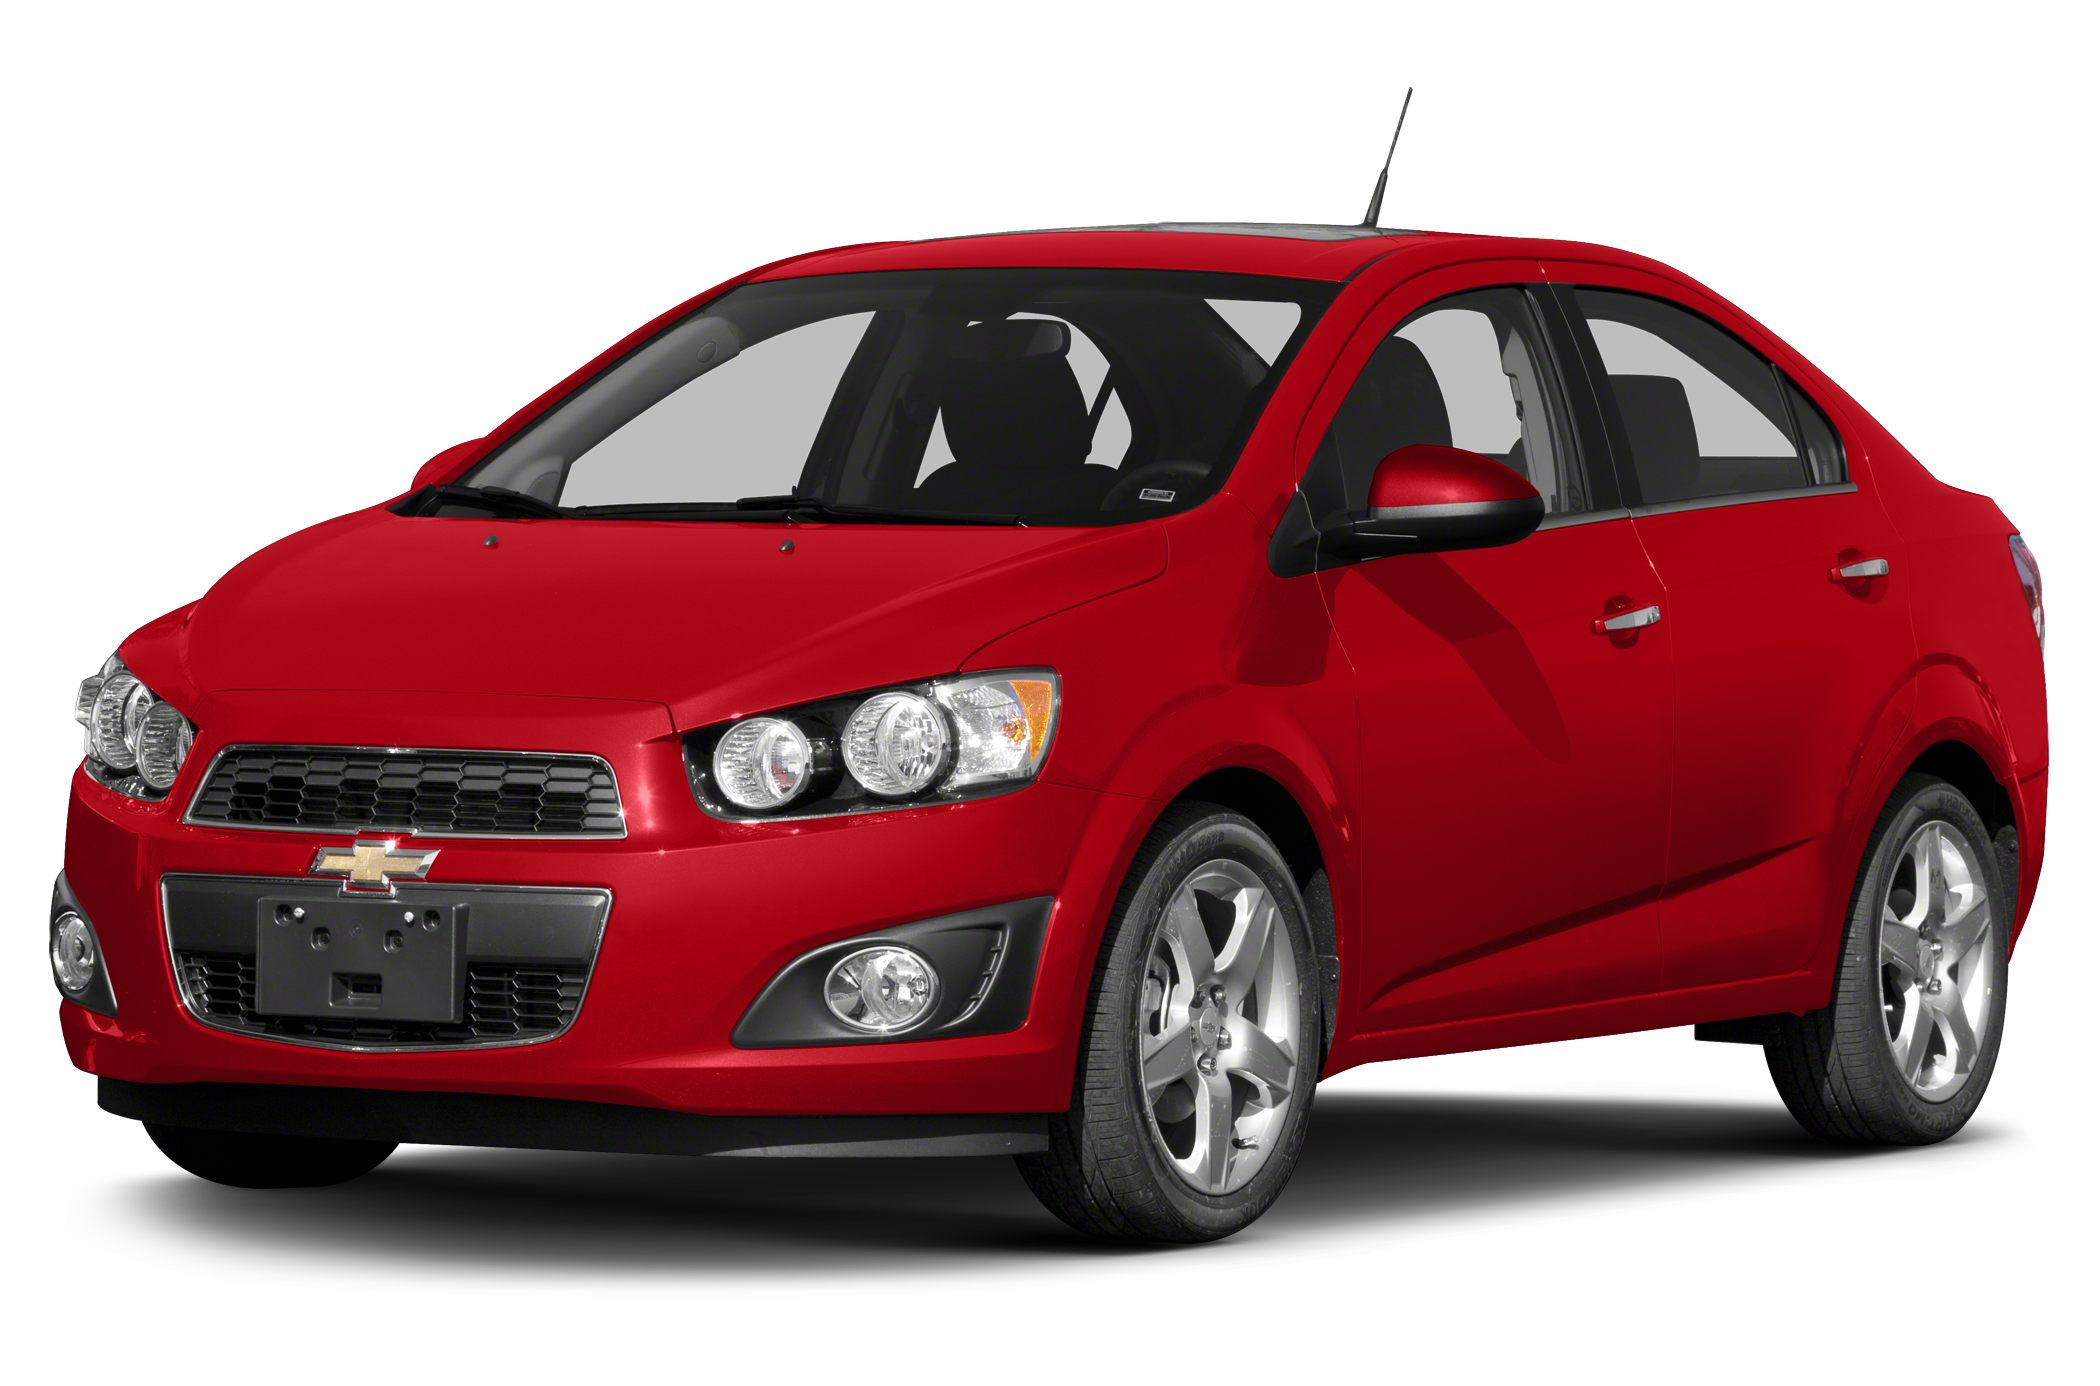 2014 Chevrolet Sonic LS Hatchback for sale in Frontenac for $17,185 with 0 miles.